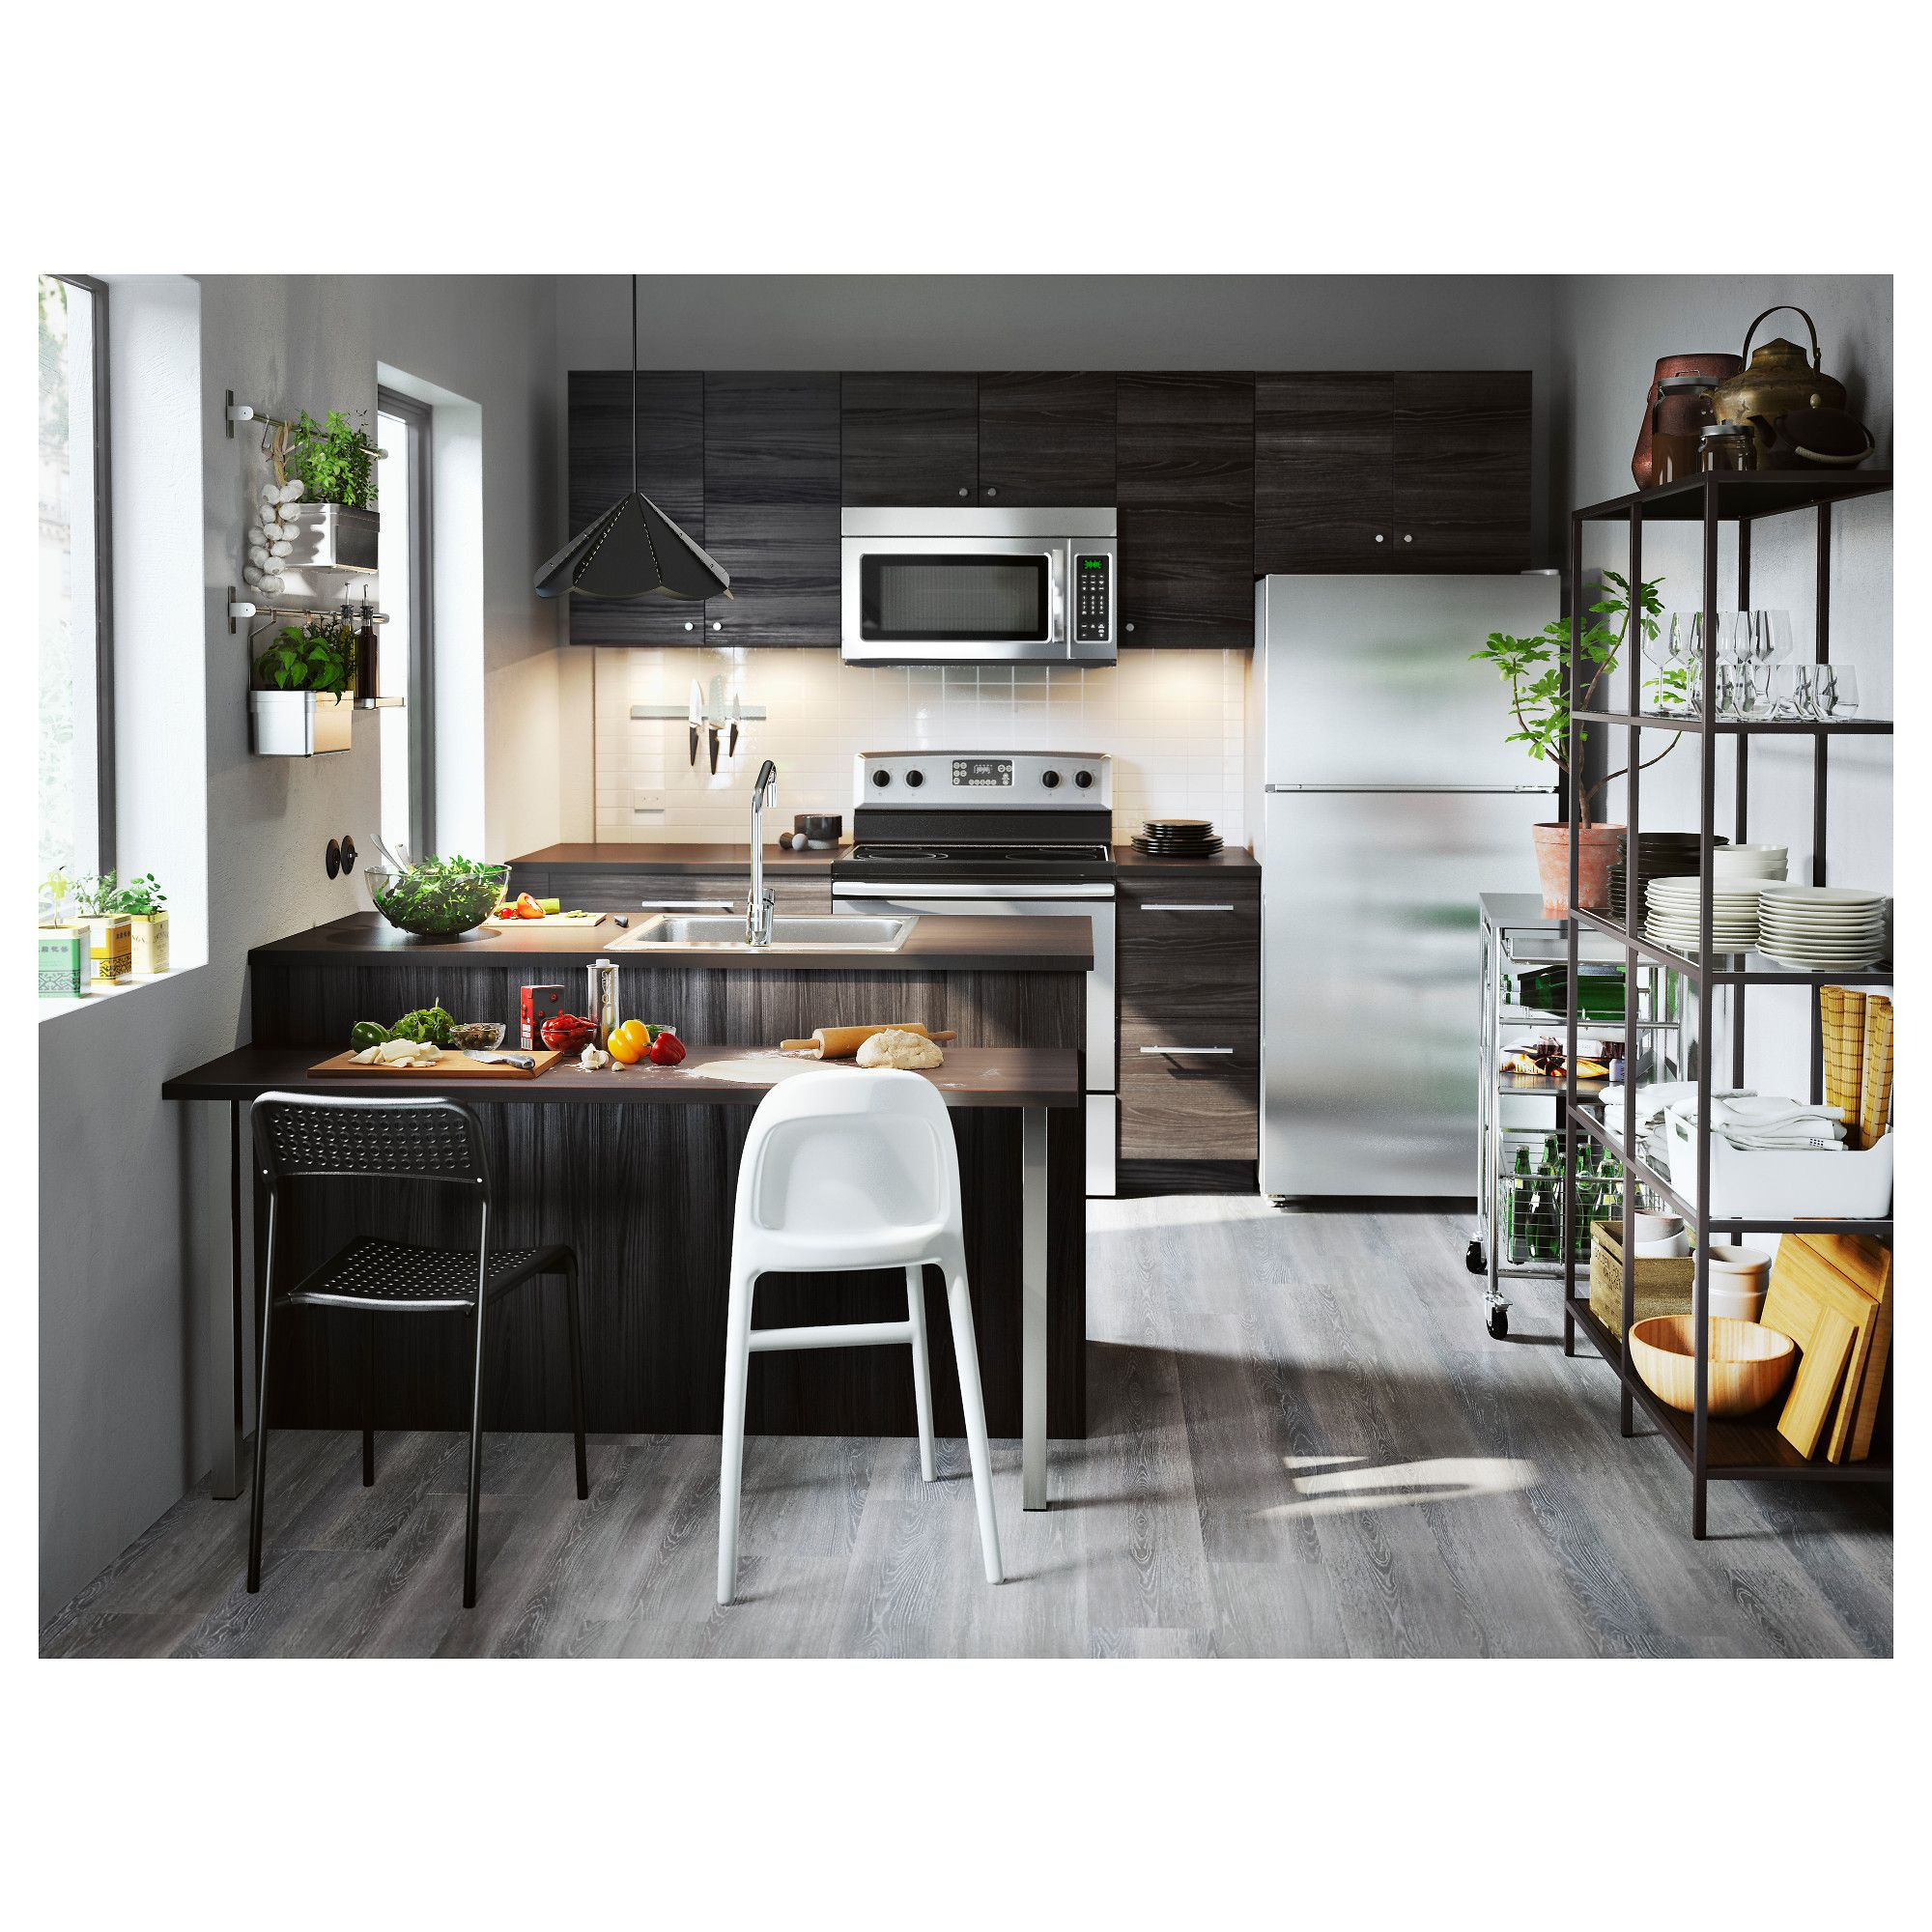 Ikea Tingsryd Door Wood Effect Black In 2019 Products